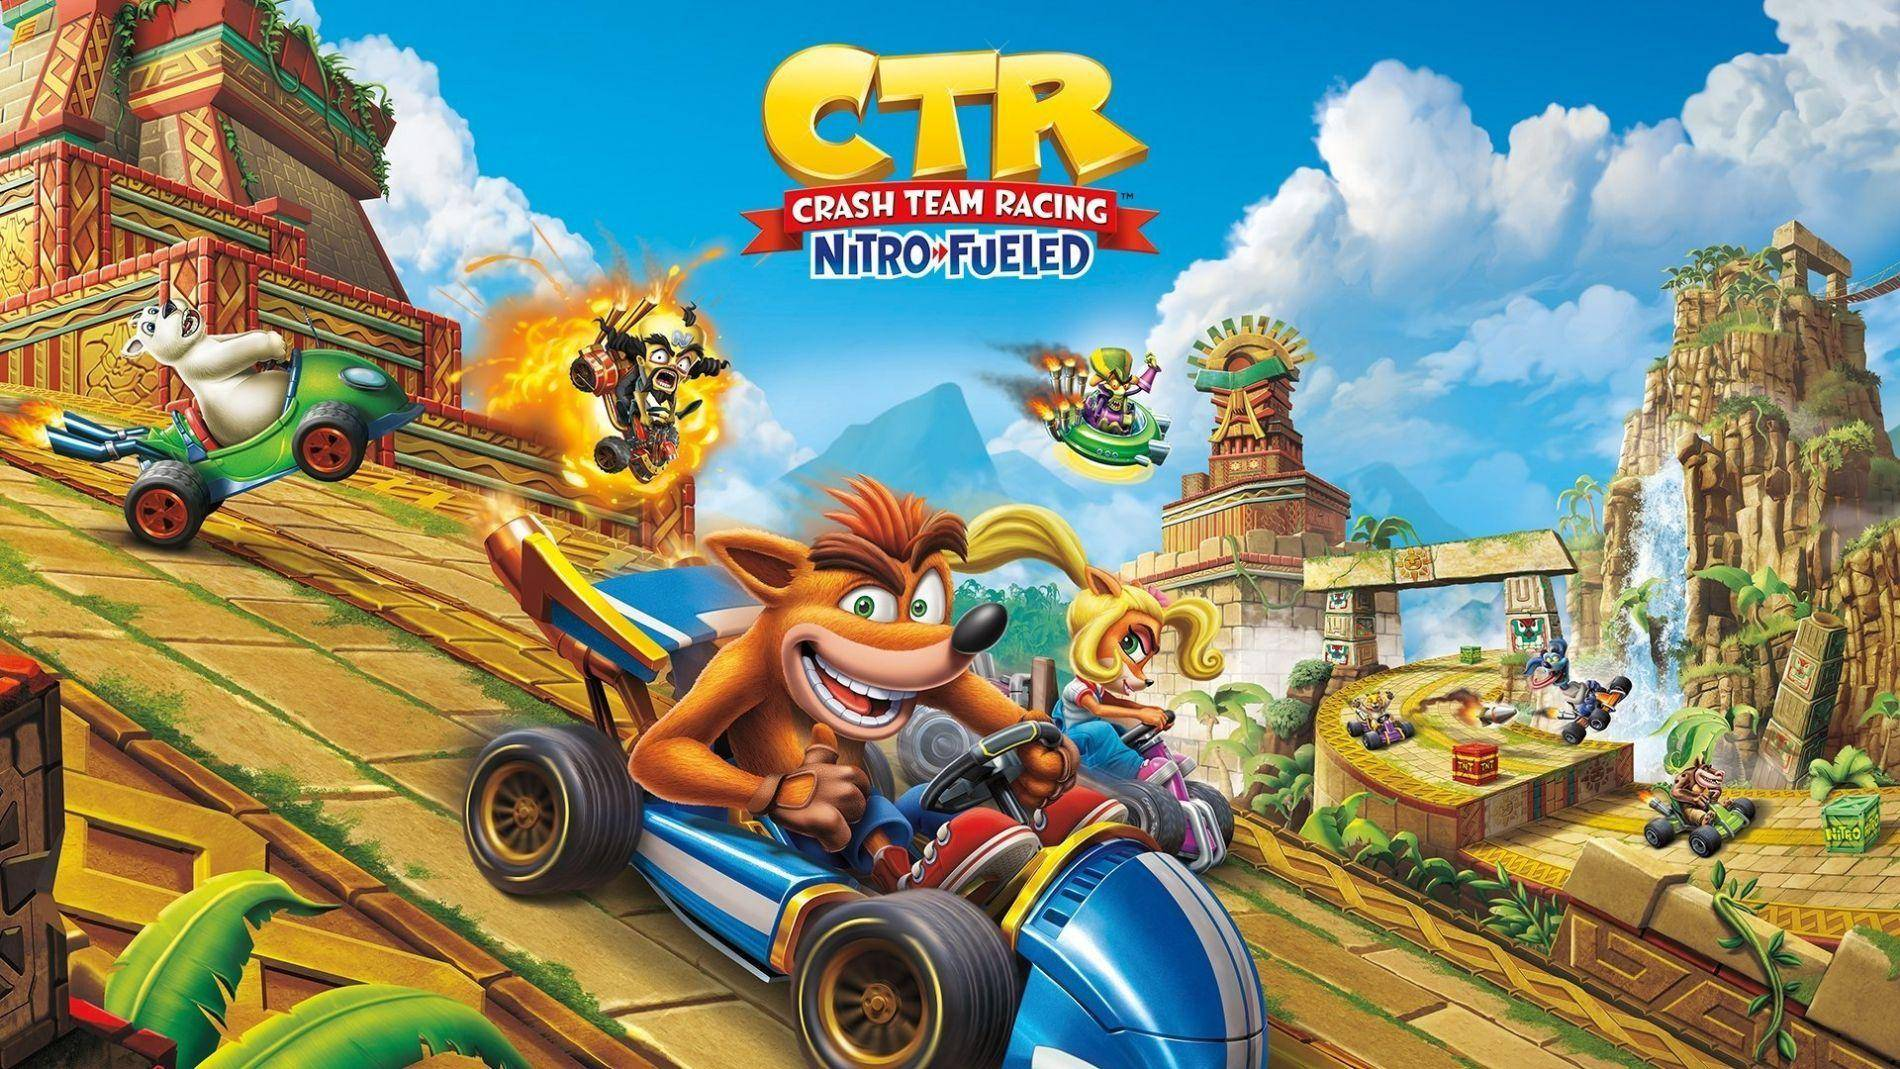 Llega el modo Grand Prix a Crash Team Racing Nitro Fueled